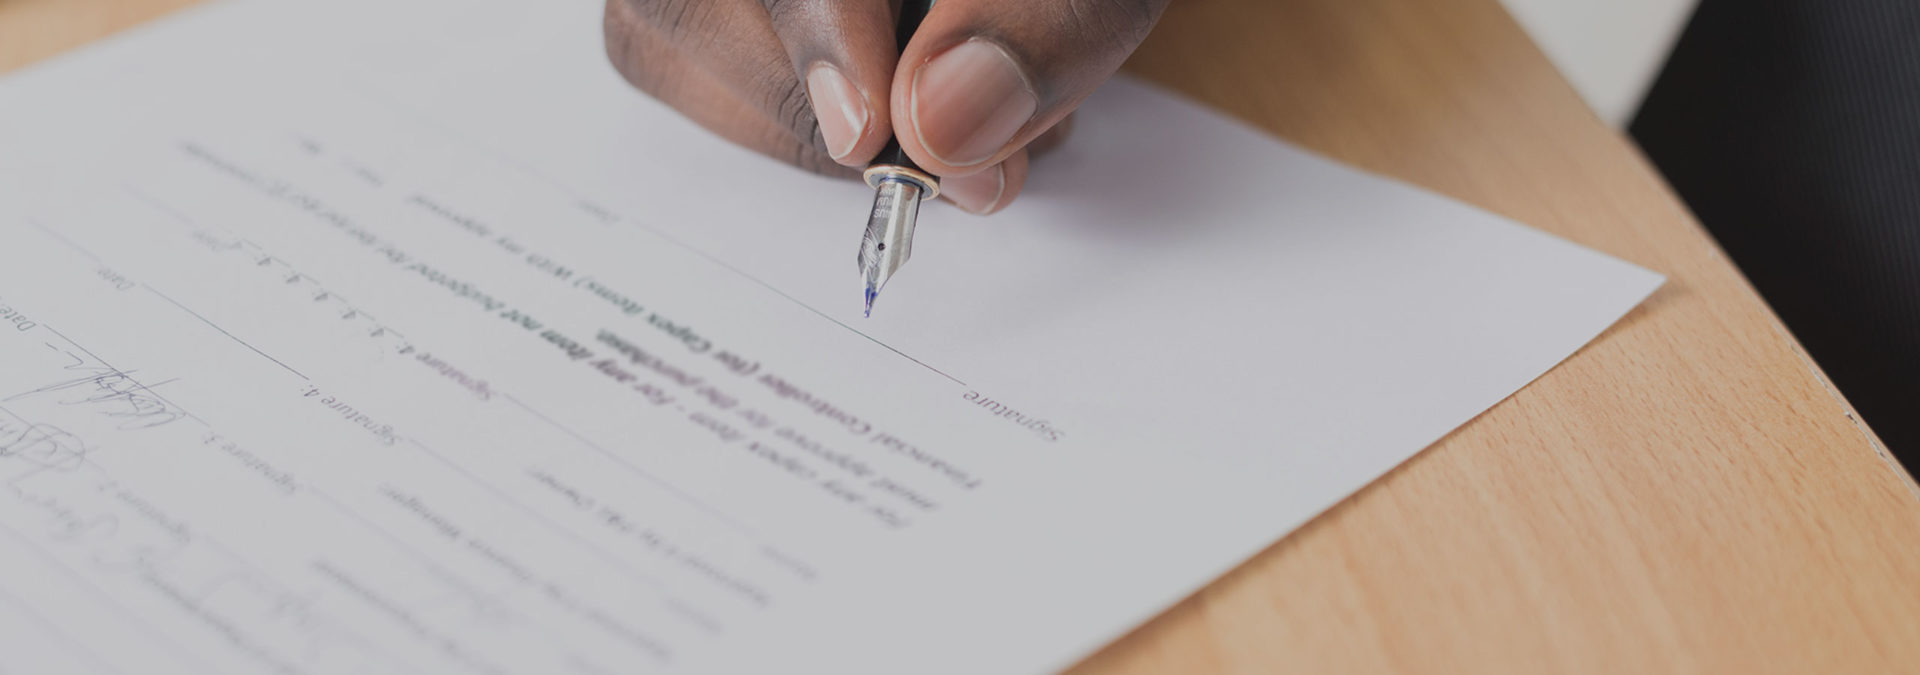 A hand holding a pen signing their name on a contract